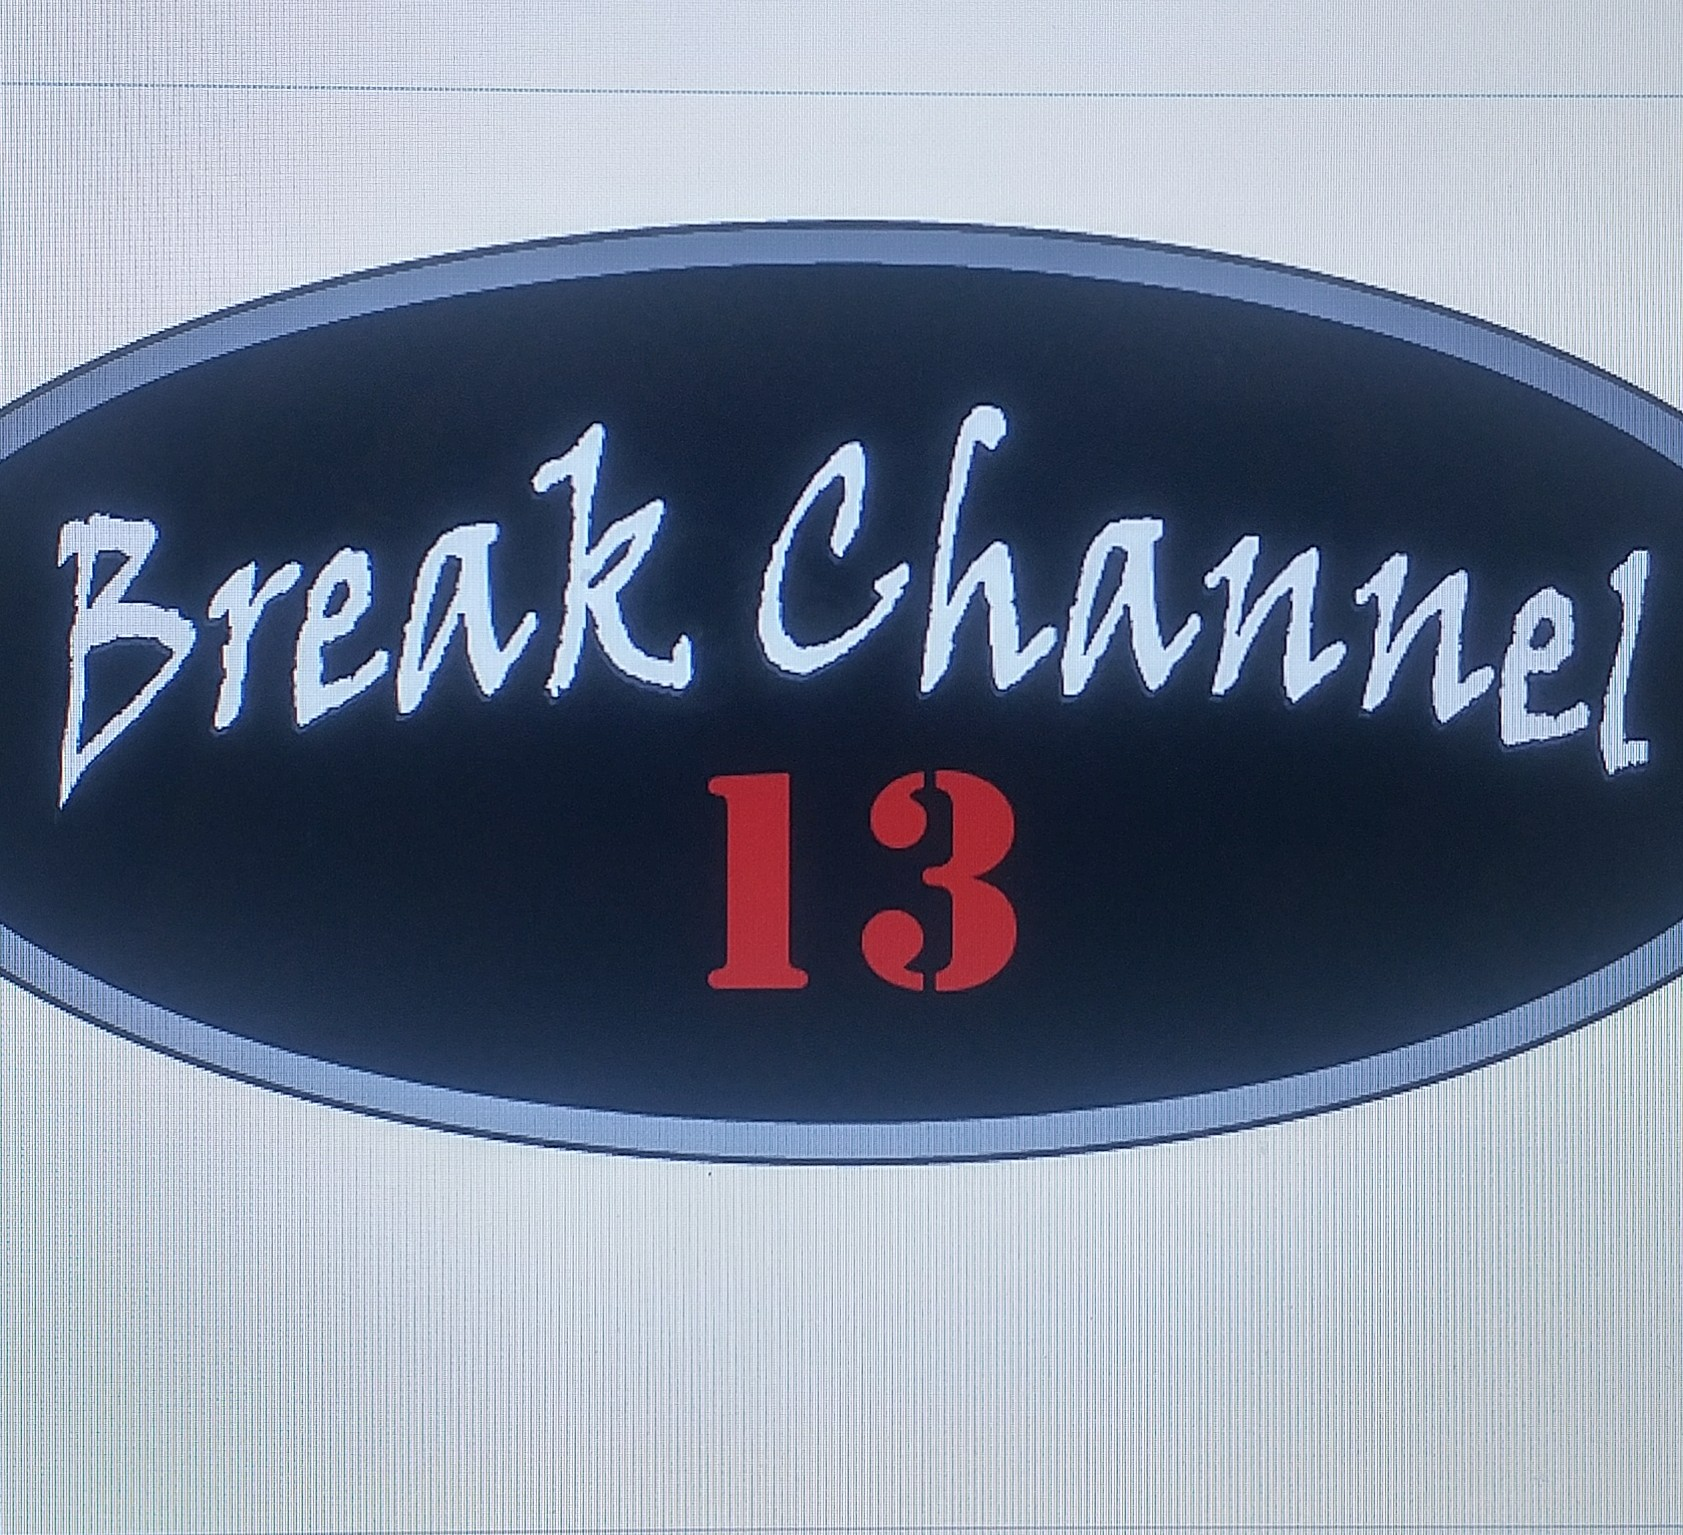 Don't miss our debut! - It's been a long time in the making but Break Channel 13 is finally ready to be released! The Watershed-Z team is sending out a HUGE THANK YOU to all of the people who have worked so hard to make this happen!On October 1, 2018, be sure to come back and listen on their page, or on one of your favorite podcast apps! We're super excited to bring you this podcast saga of a concerning, and all to plausible, future.